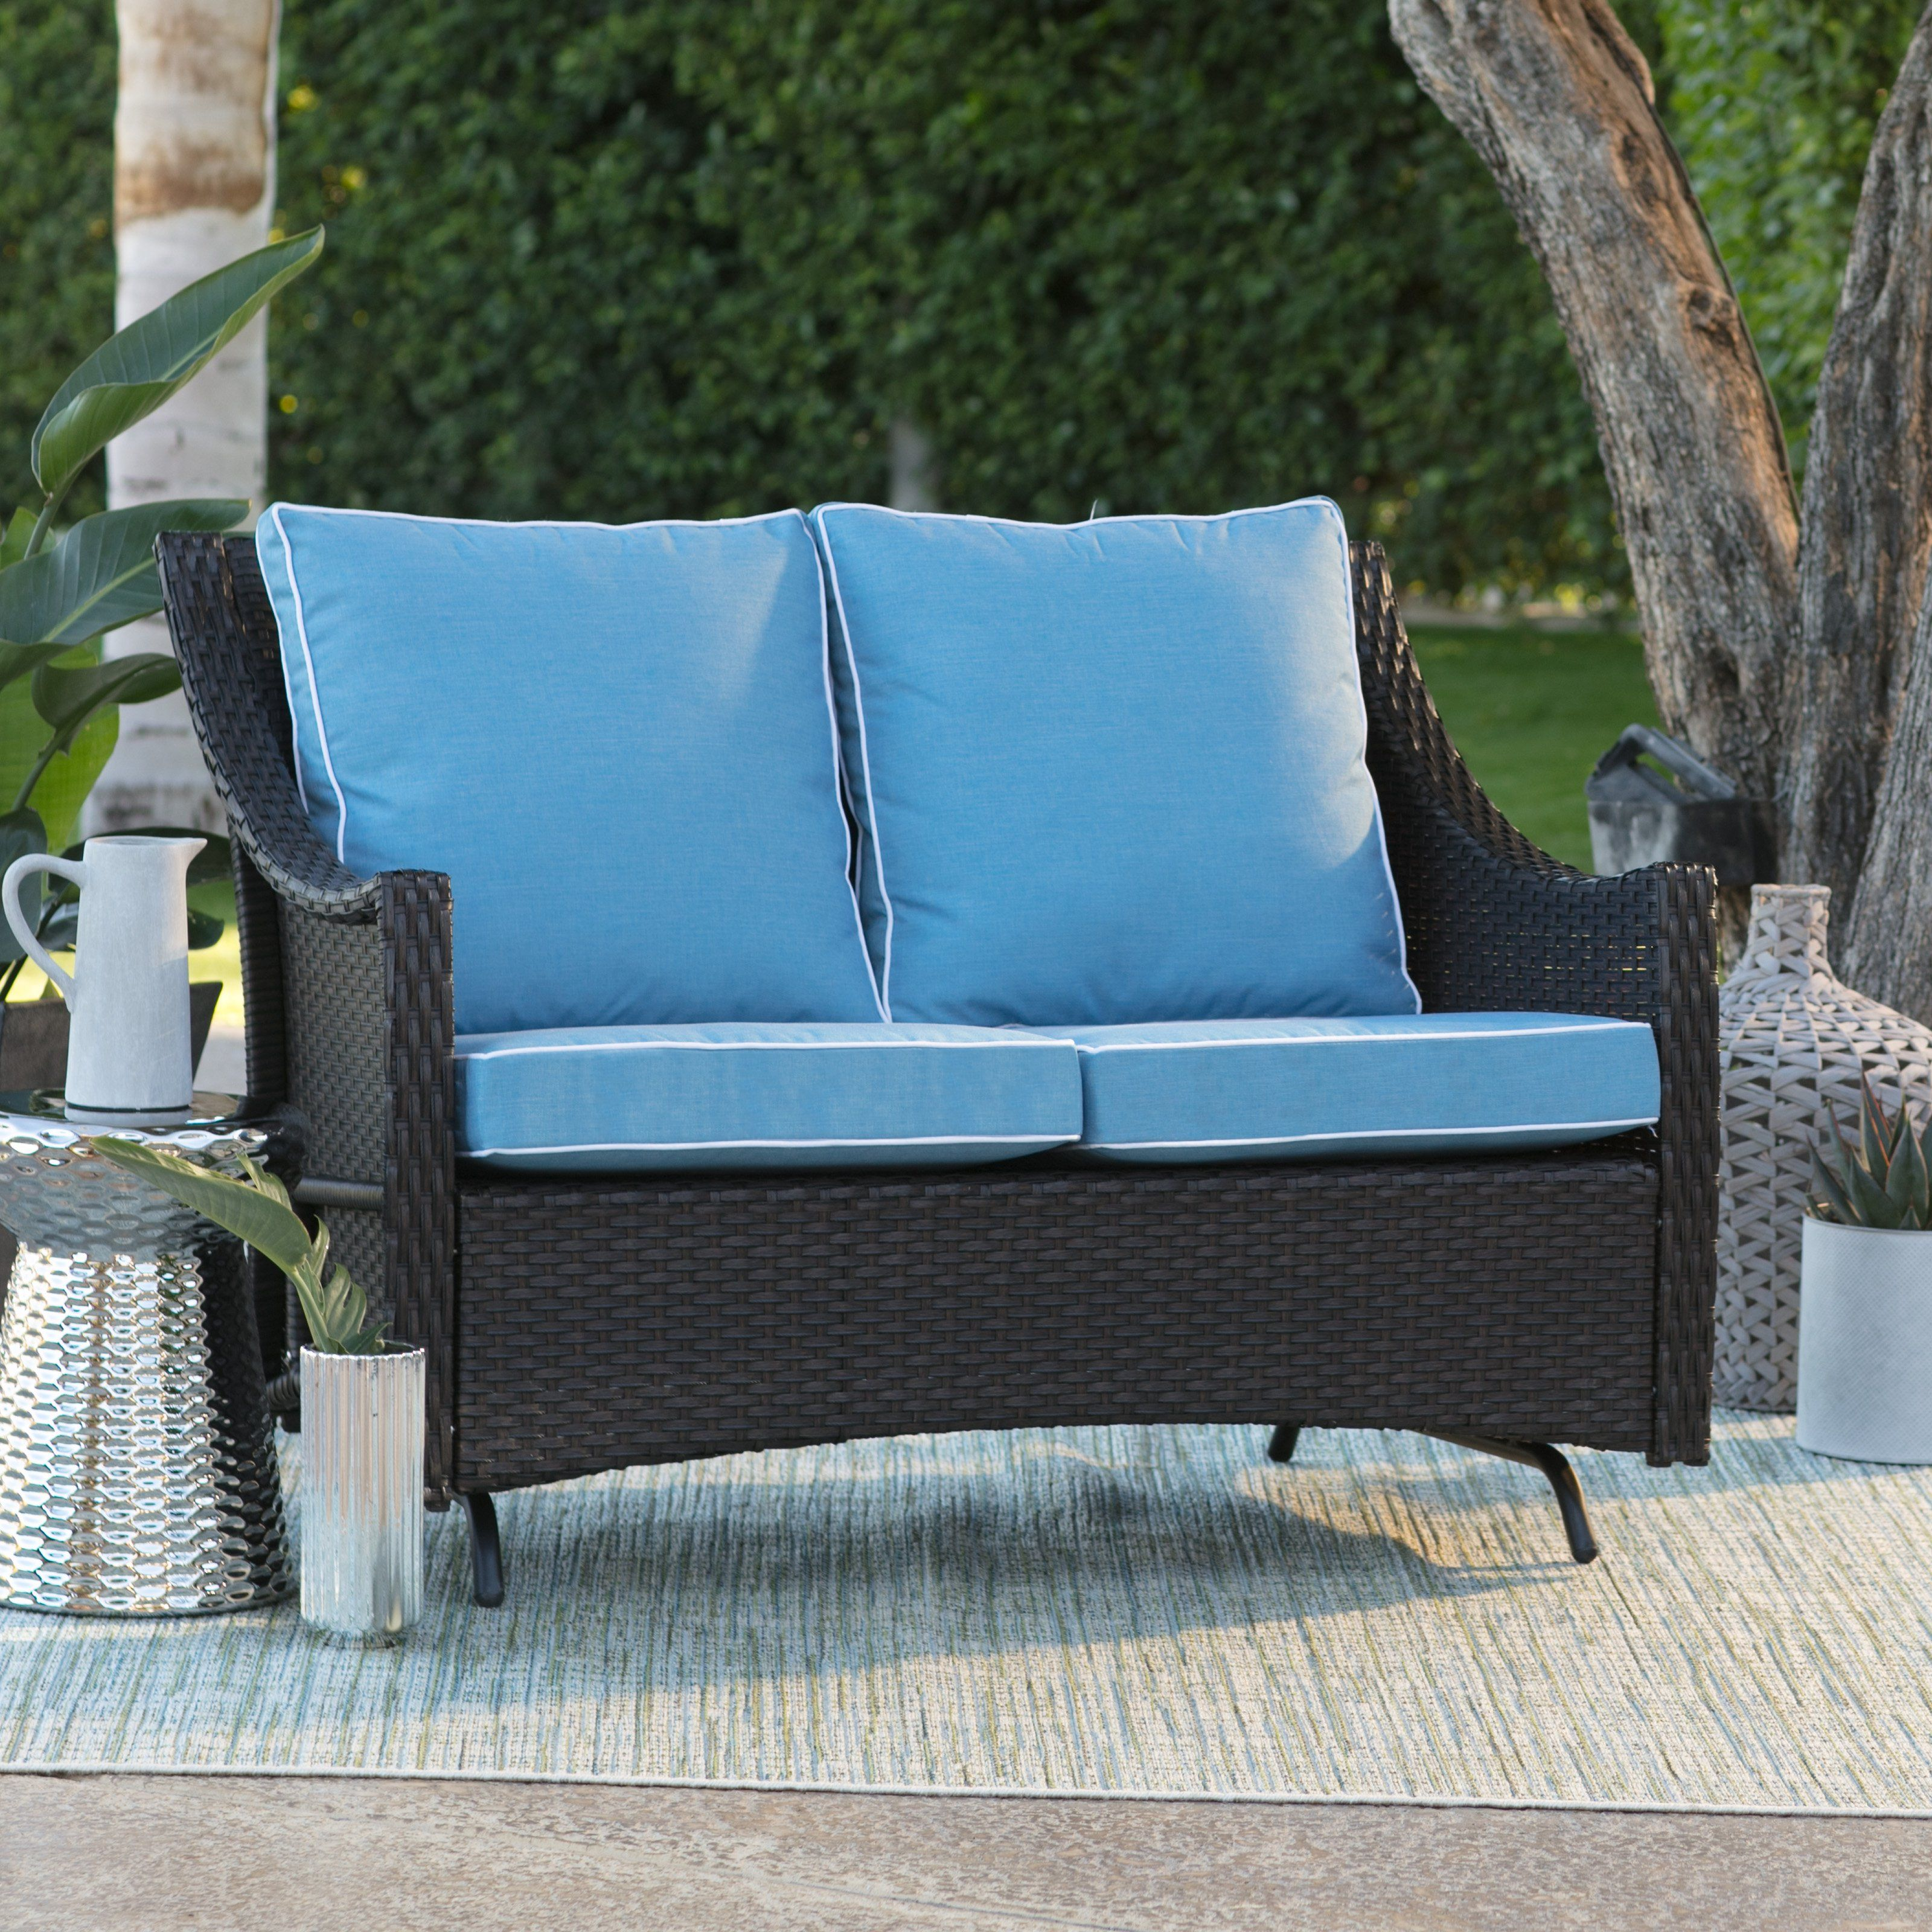 Find This Pin And More On Porch Belham Living Lindau All Weather Wicker Loveseat Glider With Cushion